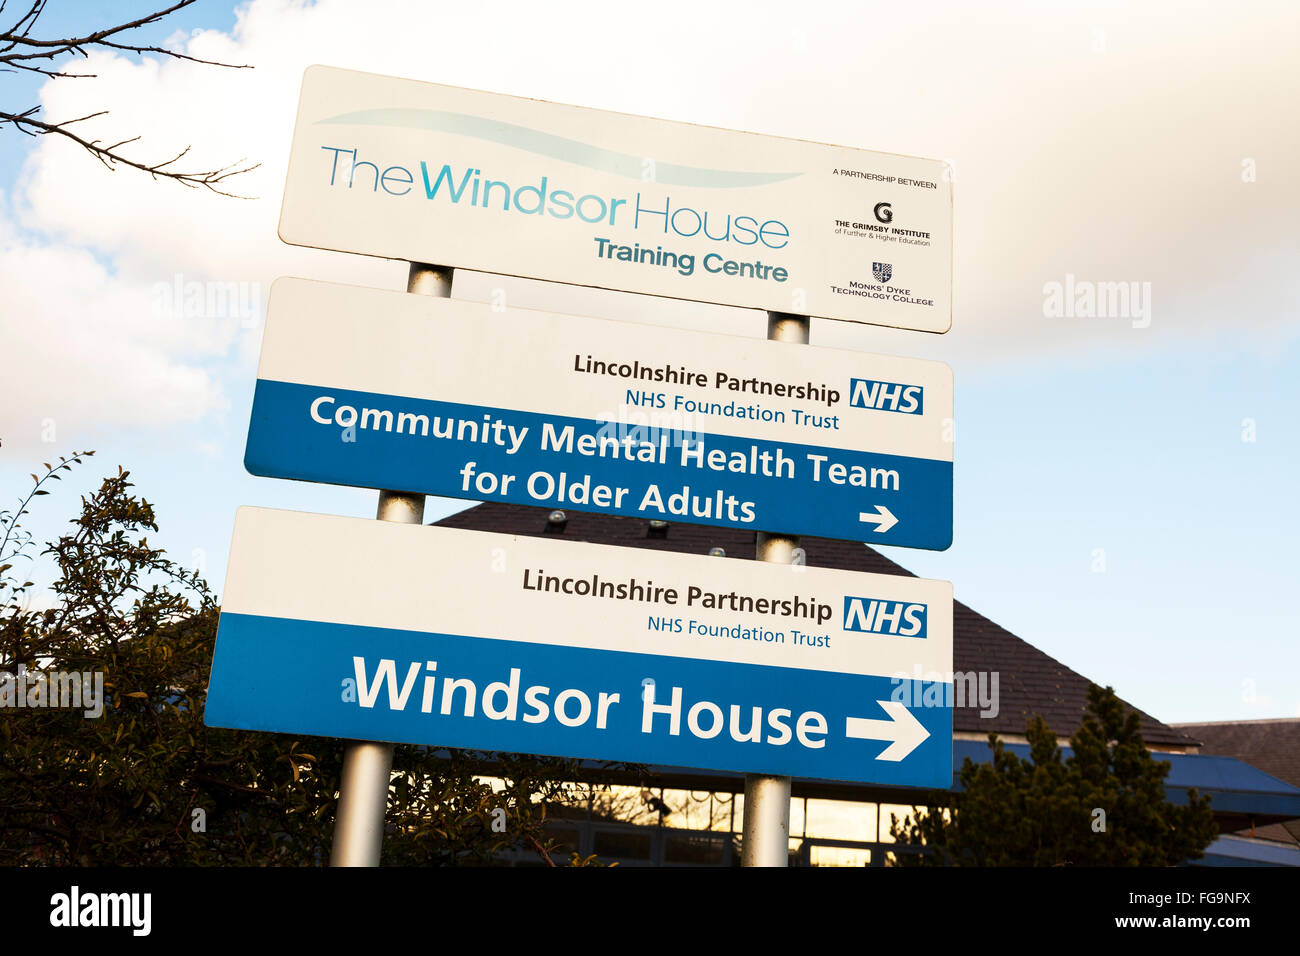 Mental Health team crisis help NHS centre center sign The Windsor House industrial estate Louth Lincolnshire UK - Stock Image